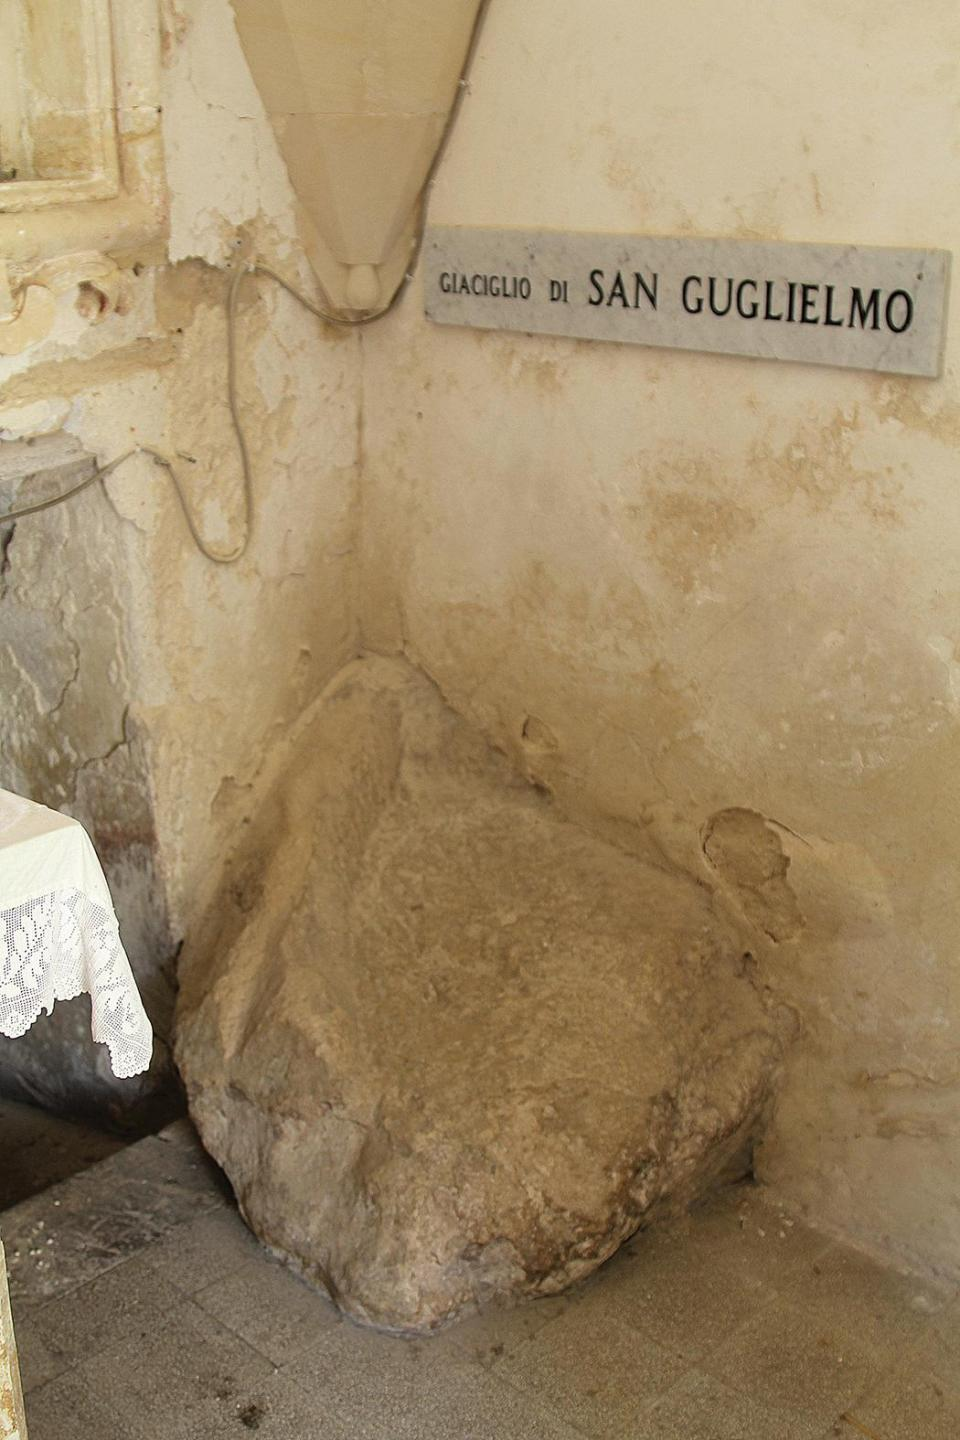 A stone used as a bed by San Guglielmo the hermit.